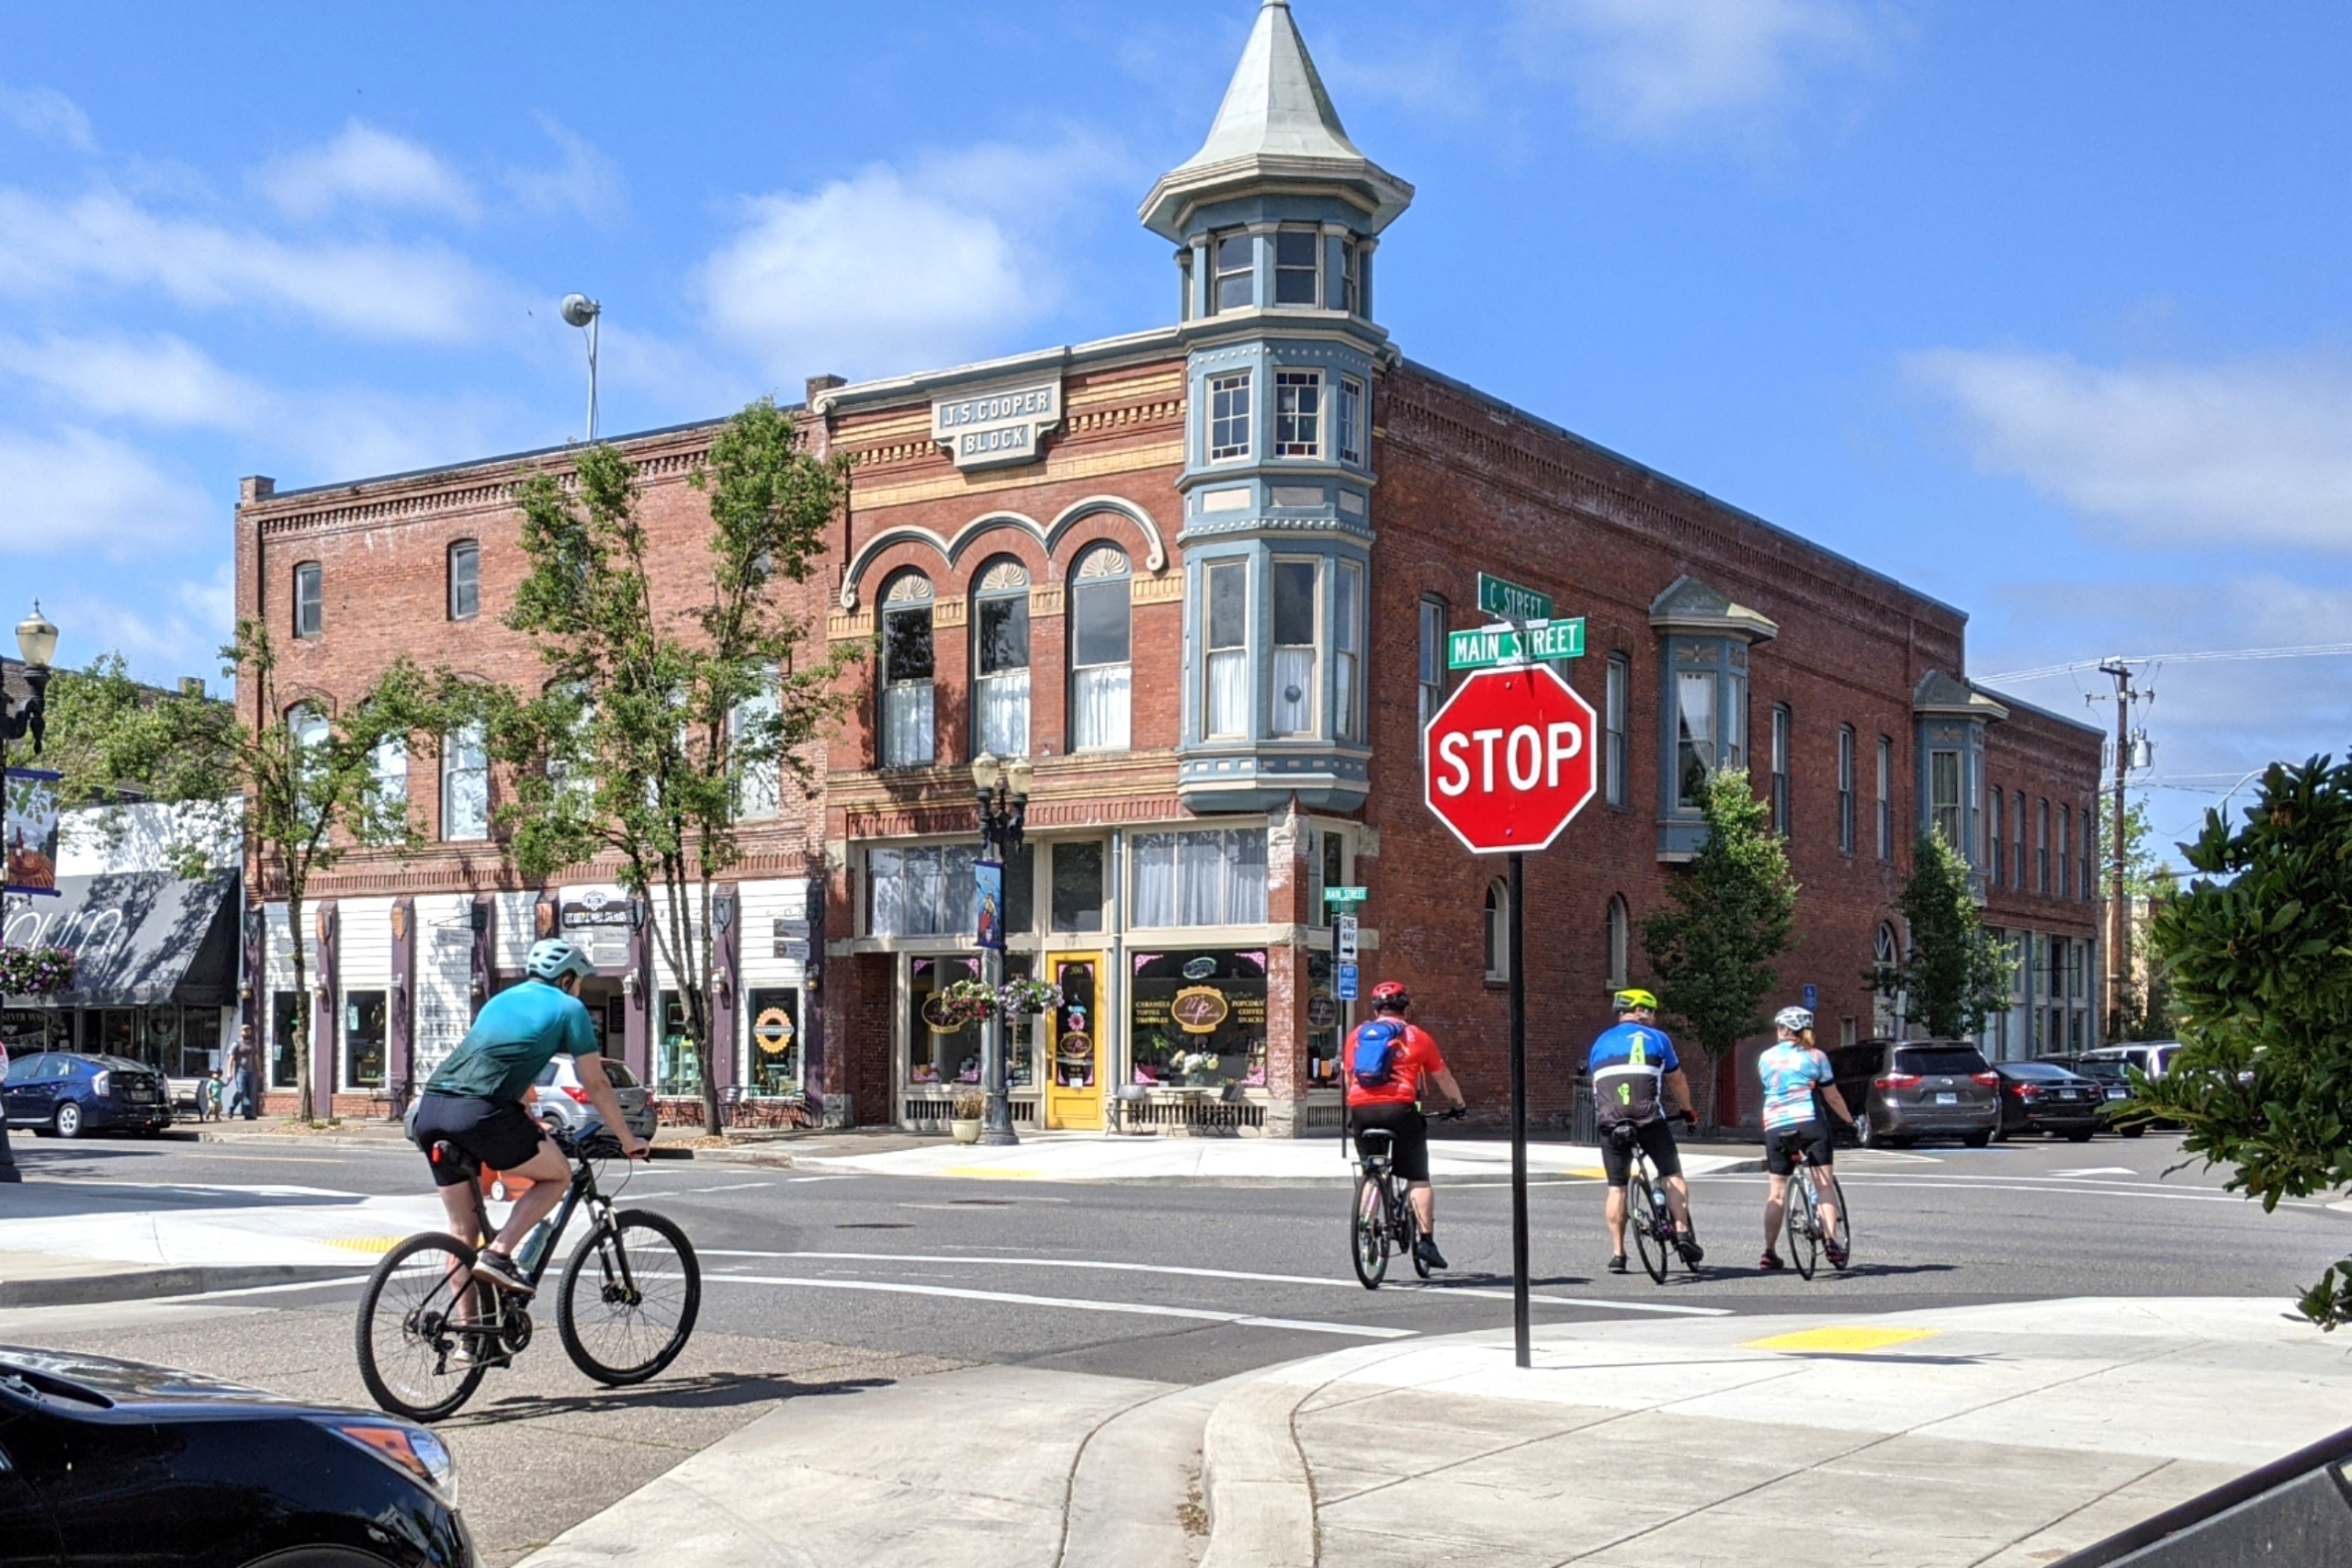 A group of cyclists going on a ride downtown